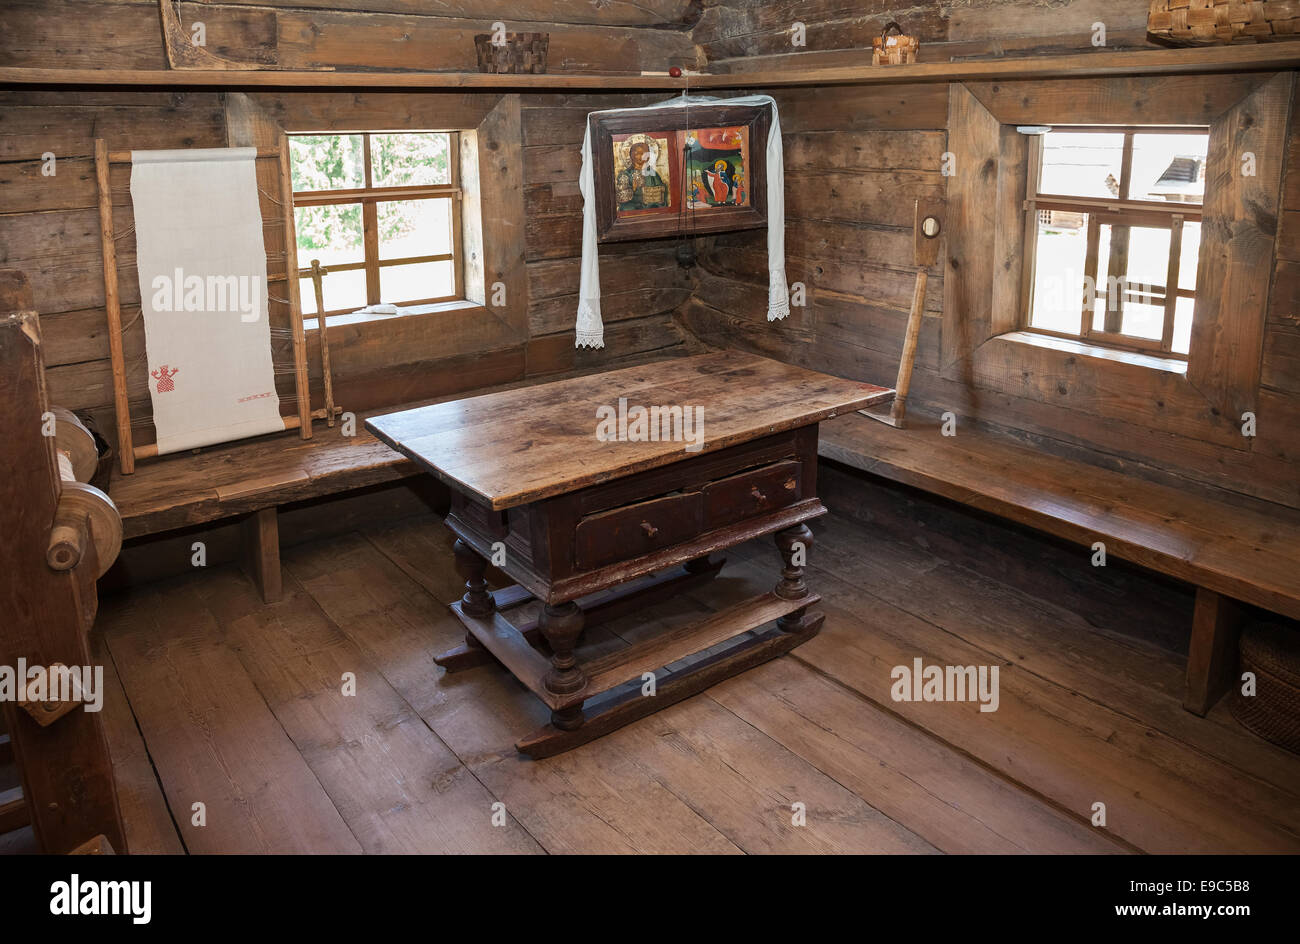 Interior of old rural wooden house in the museum of wooden architecture Vitoslavlitsy. Wooden - Stock Image